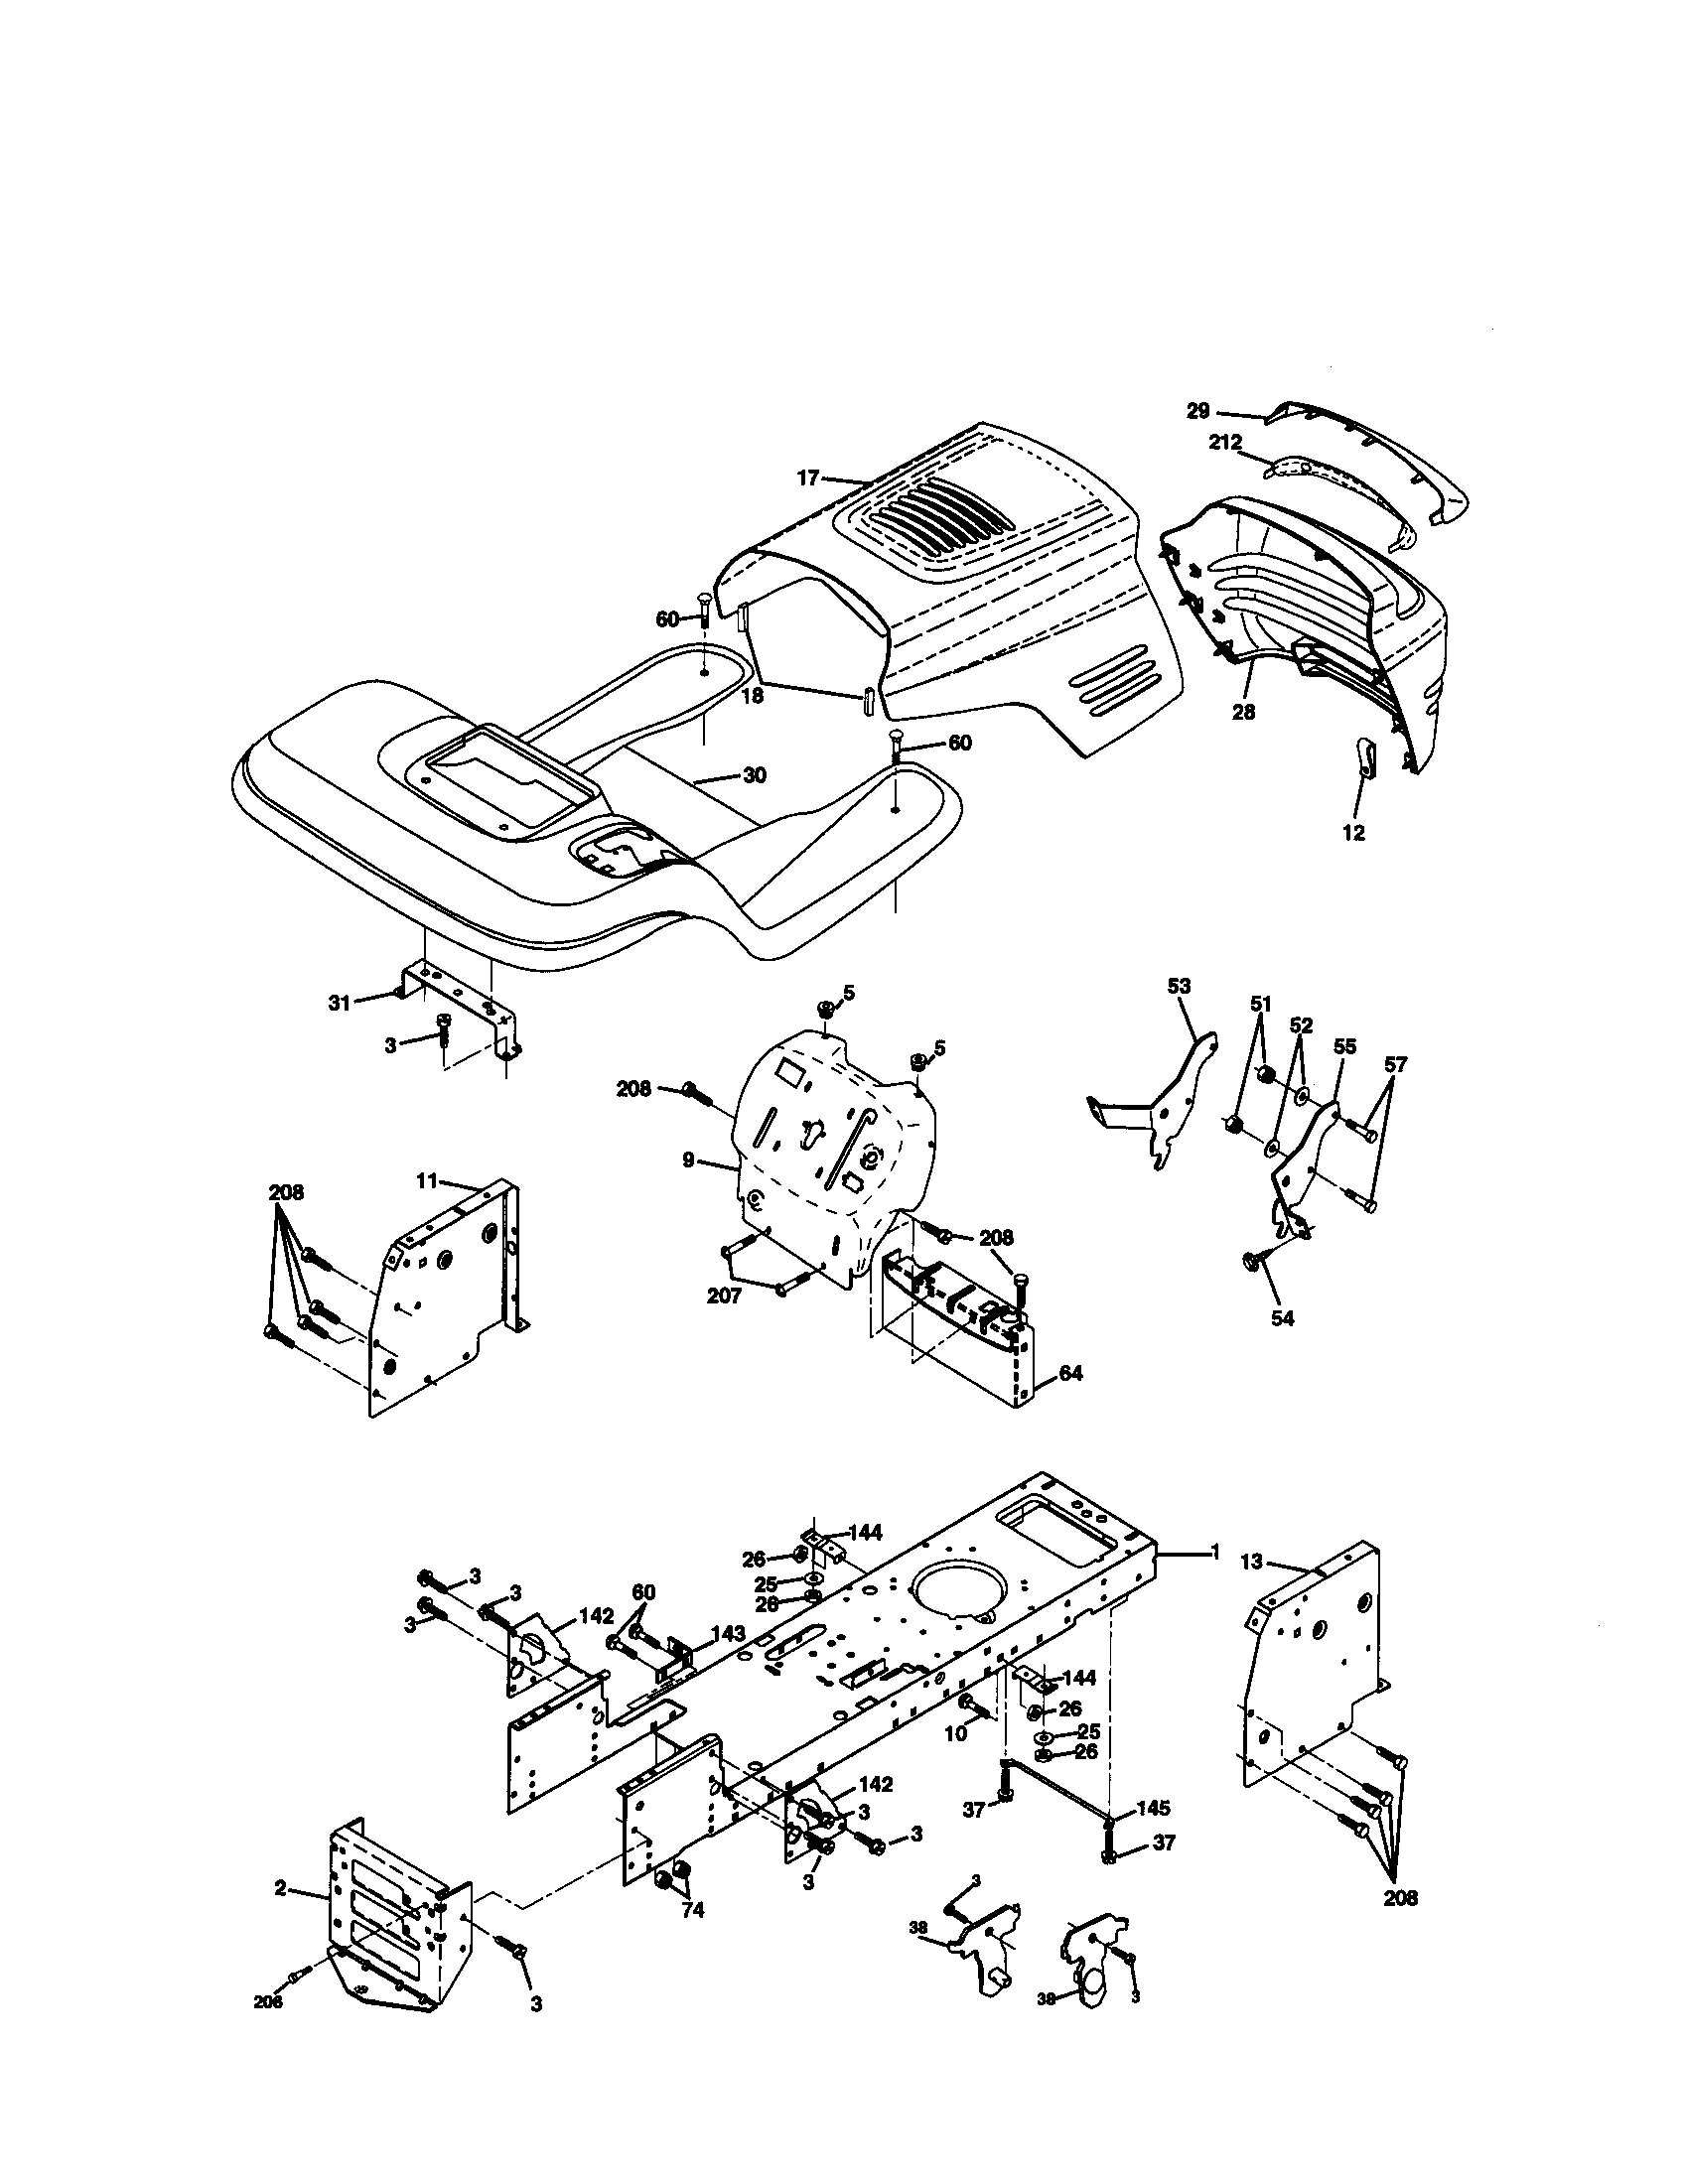 craftsman lawn tractor parts diagram wiring for motion sensor model 917270671 genuine chassis